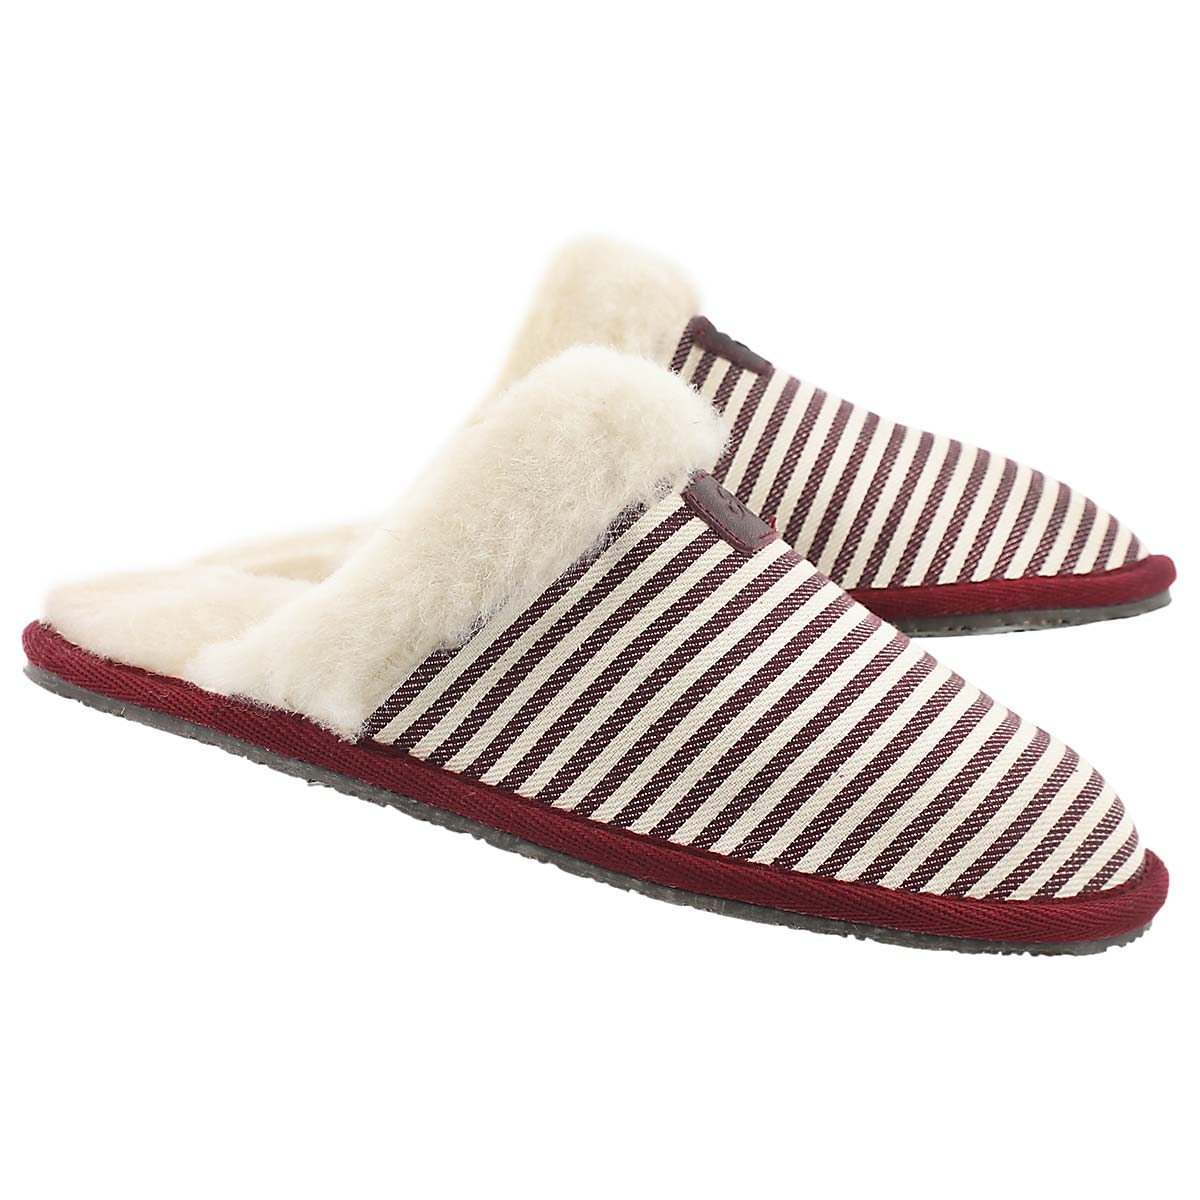 Lds Stacey burg stripe mem. foam slipper